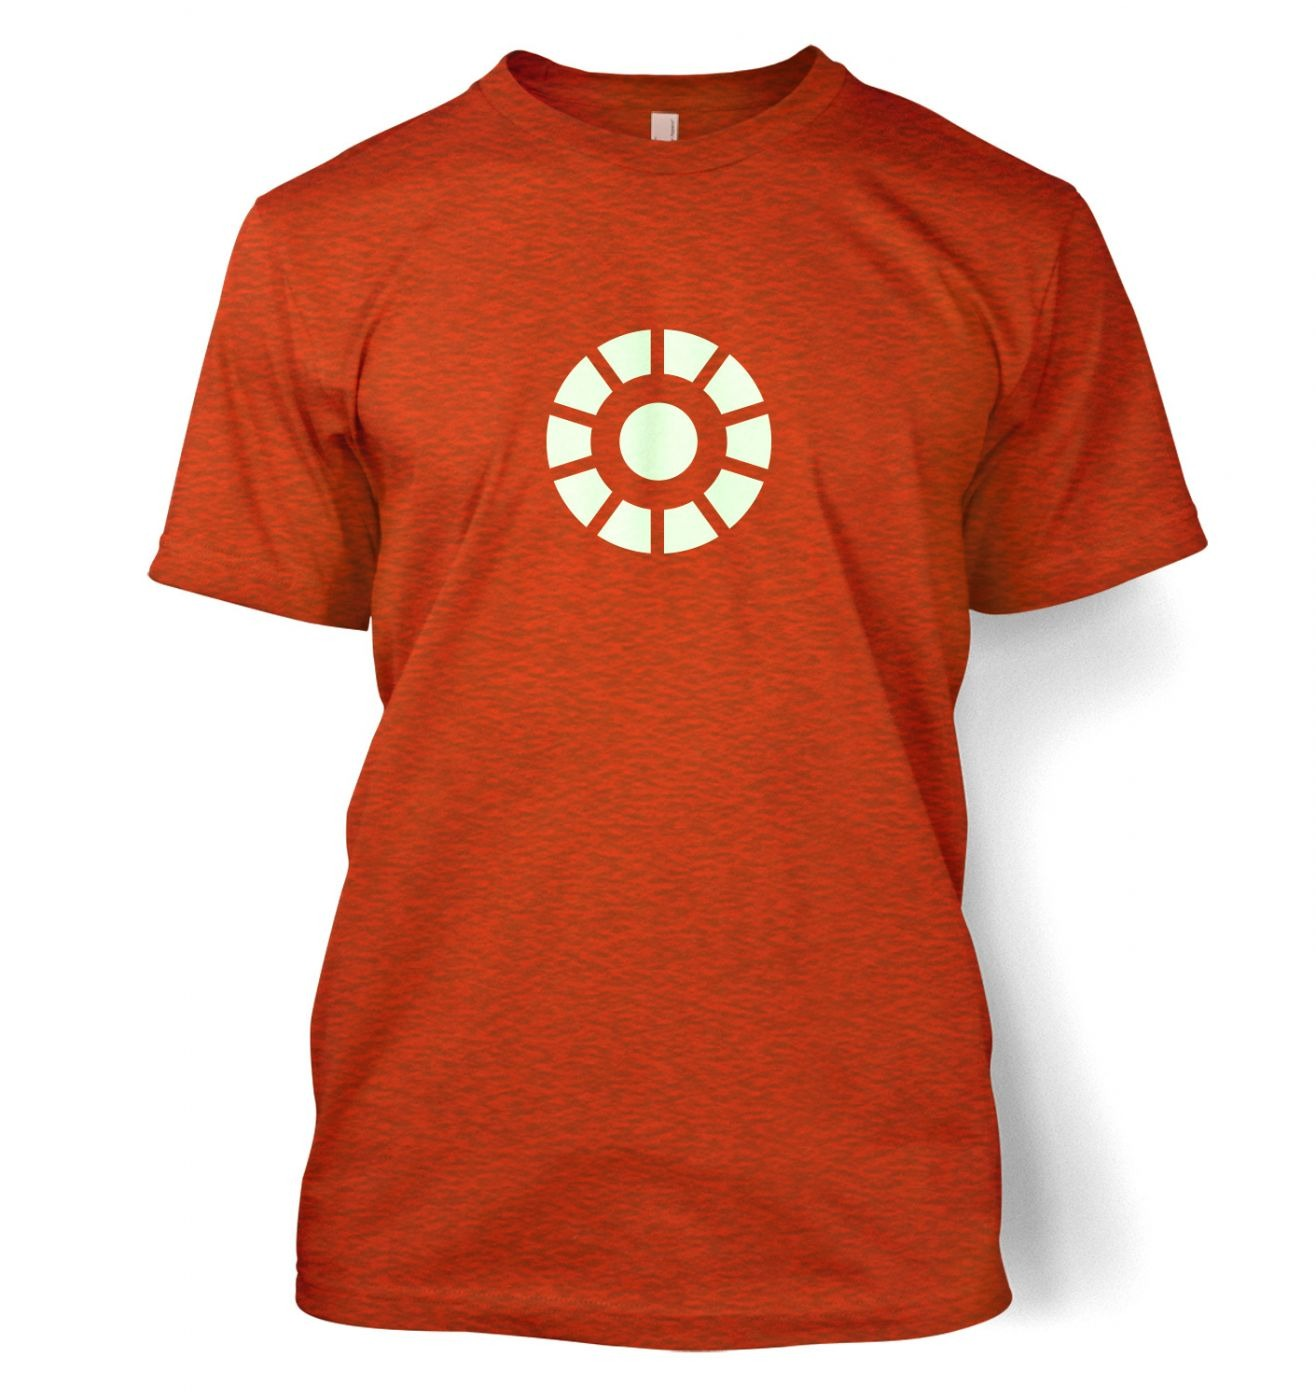 Arc Reactor (glow in the dark) t-shirt